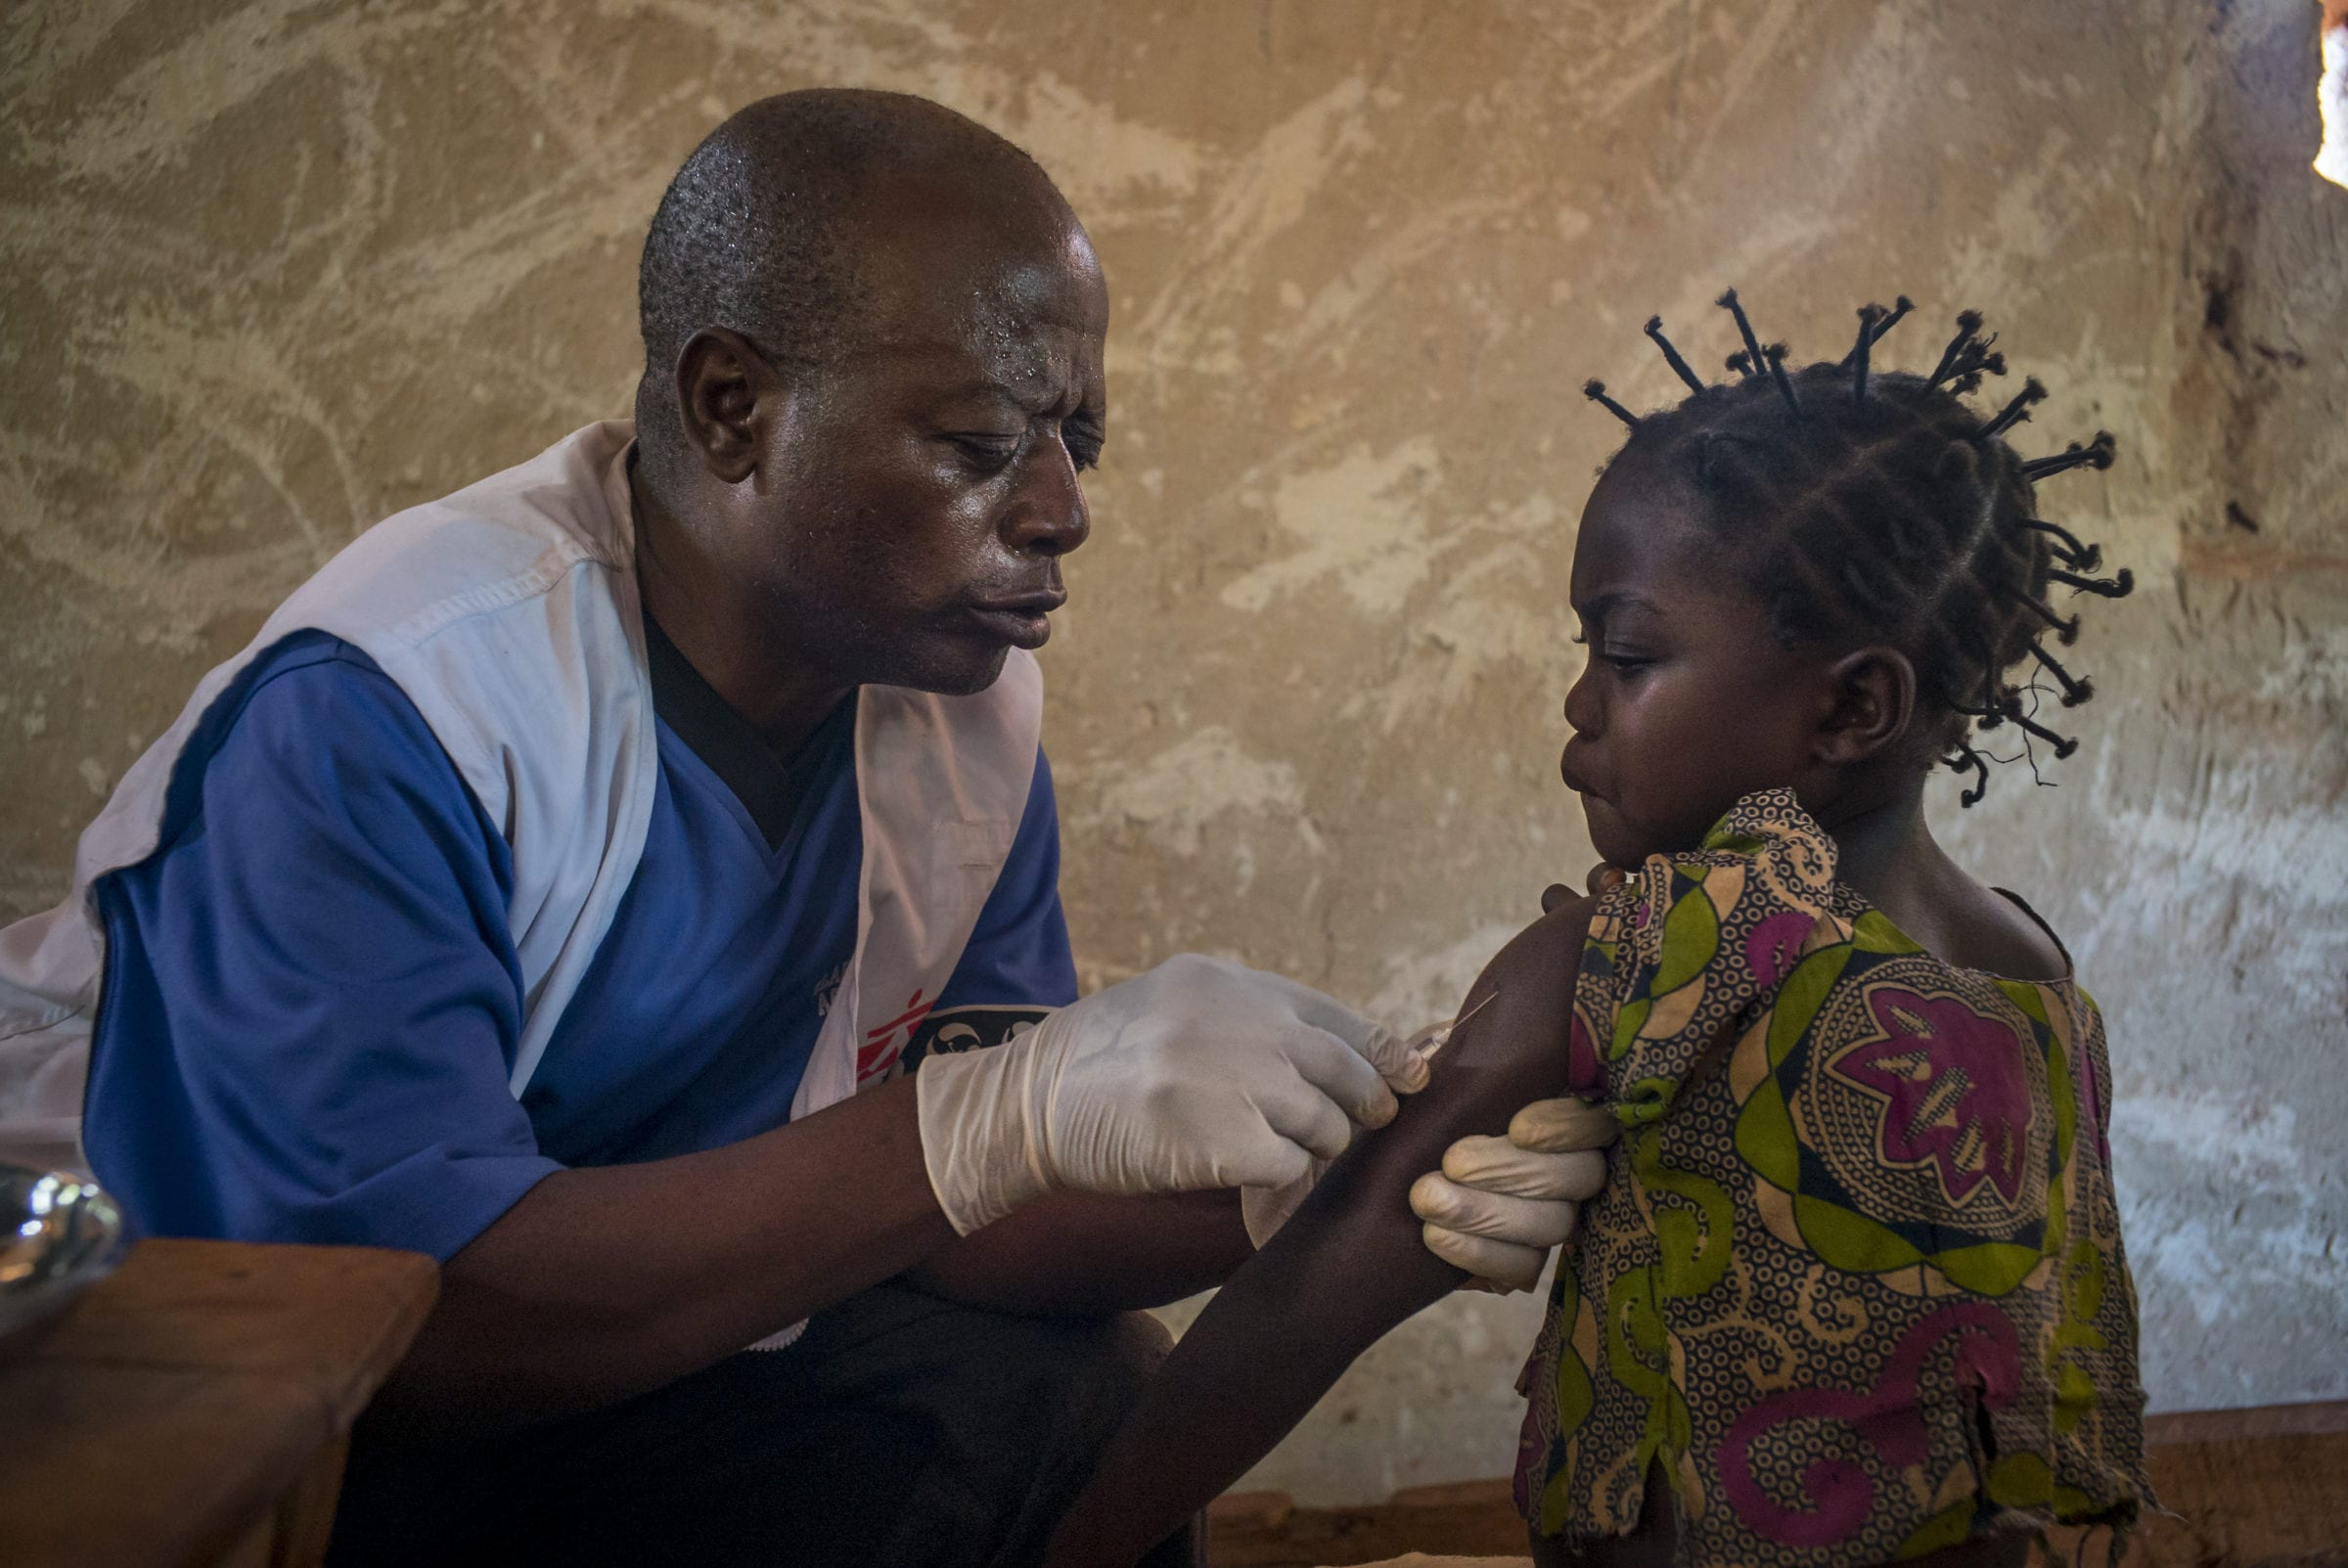 A young girl receives a measles vaccination on Day 1 of the vaccination campaign. Kolo, Bas-Uele Province, Democratic Republic of Congo.